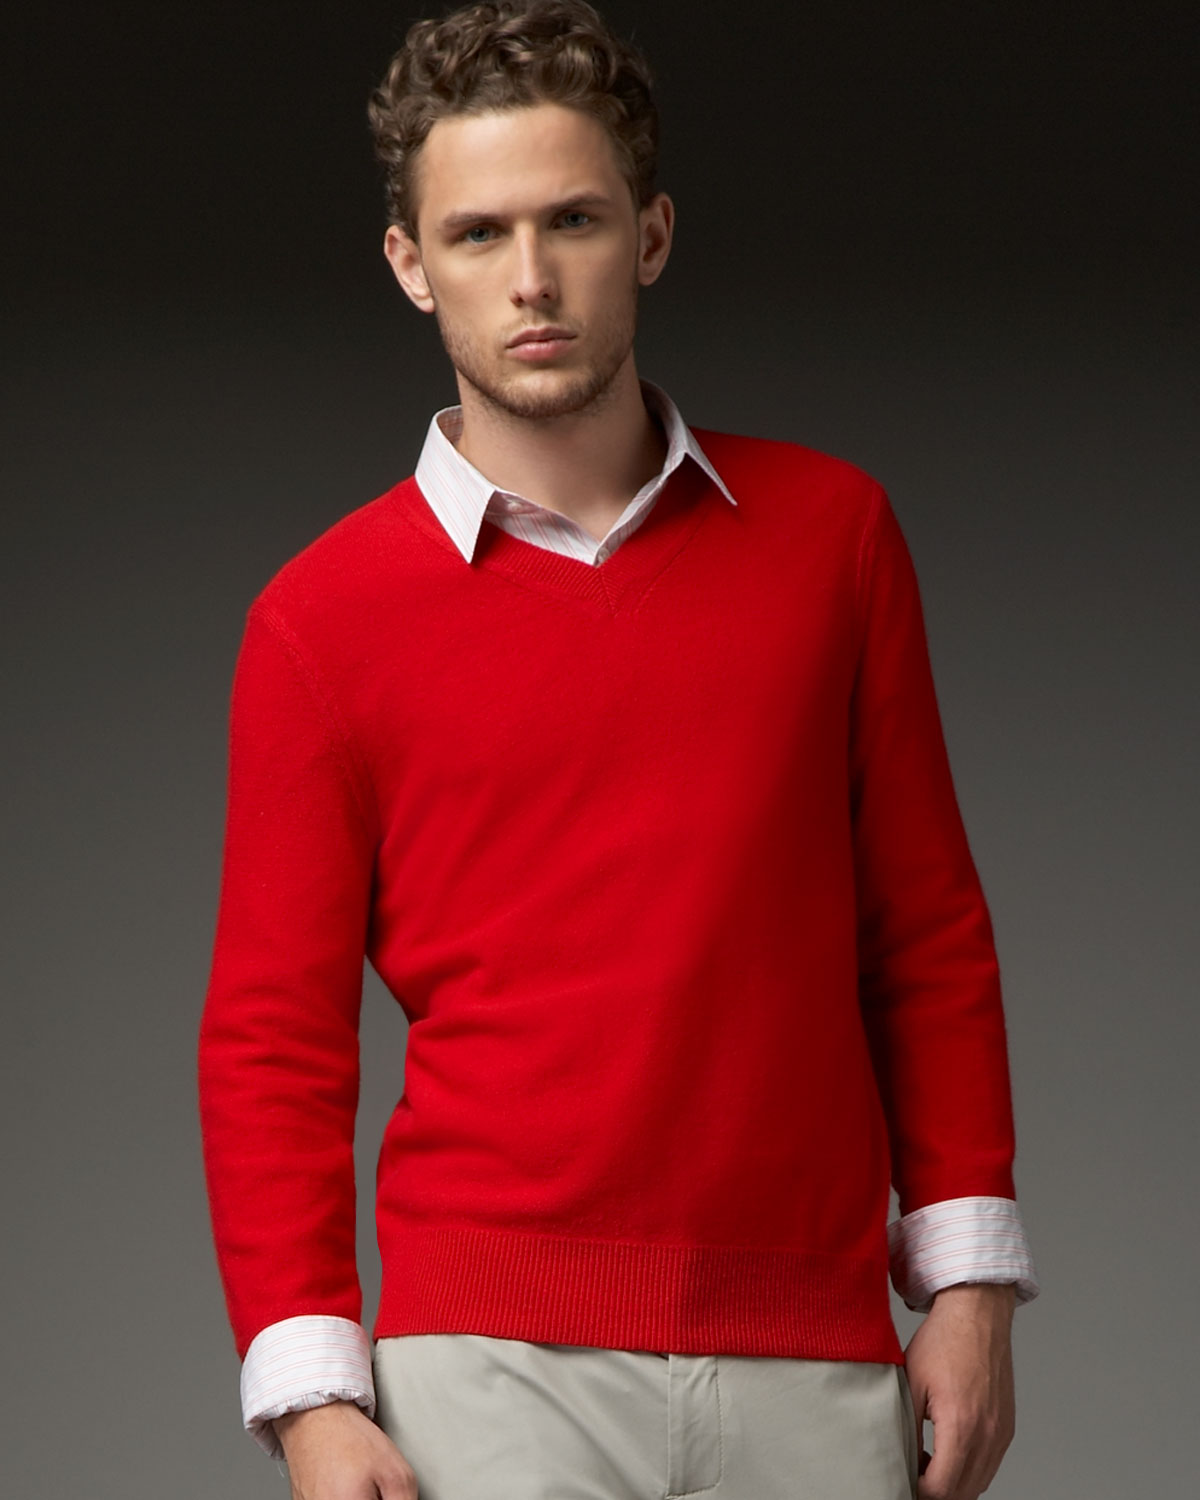 Online shopping from a great selection at Clothing Store. Showing the most relevant results. See all results for mens red v neck jumper.